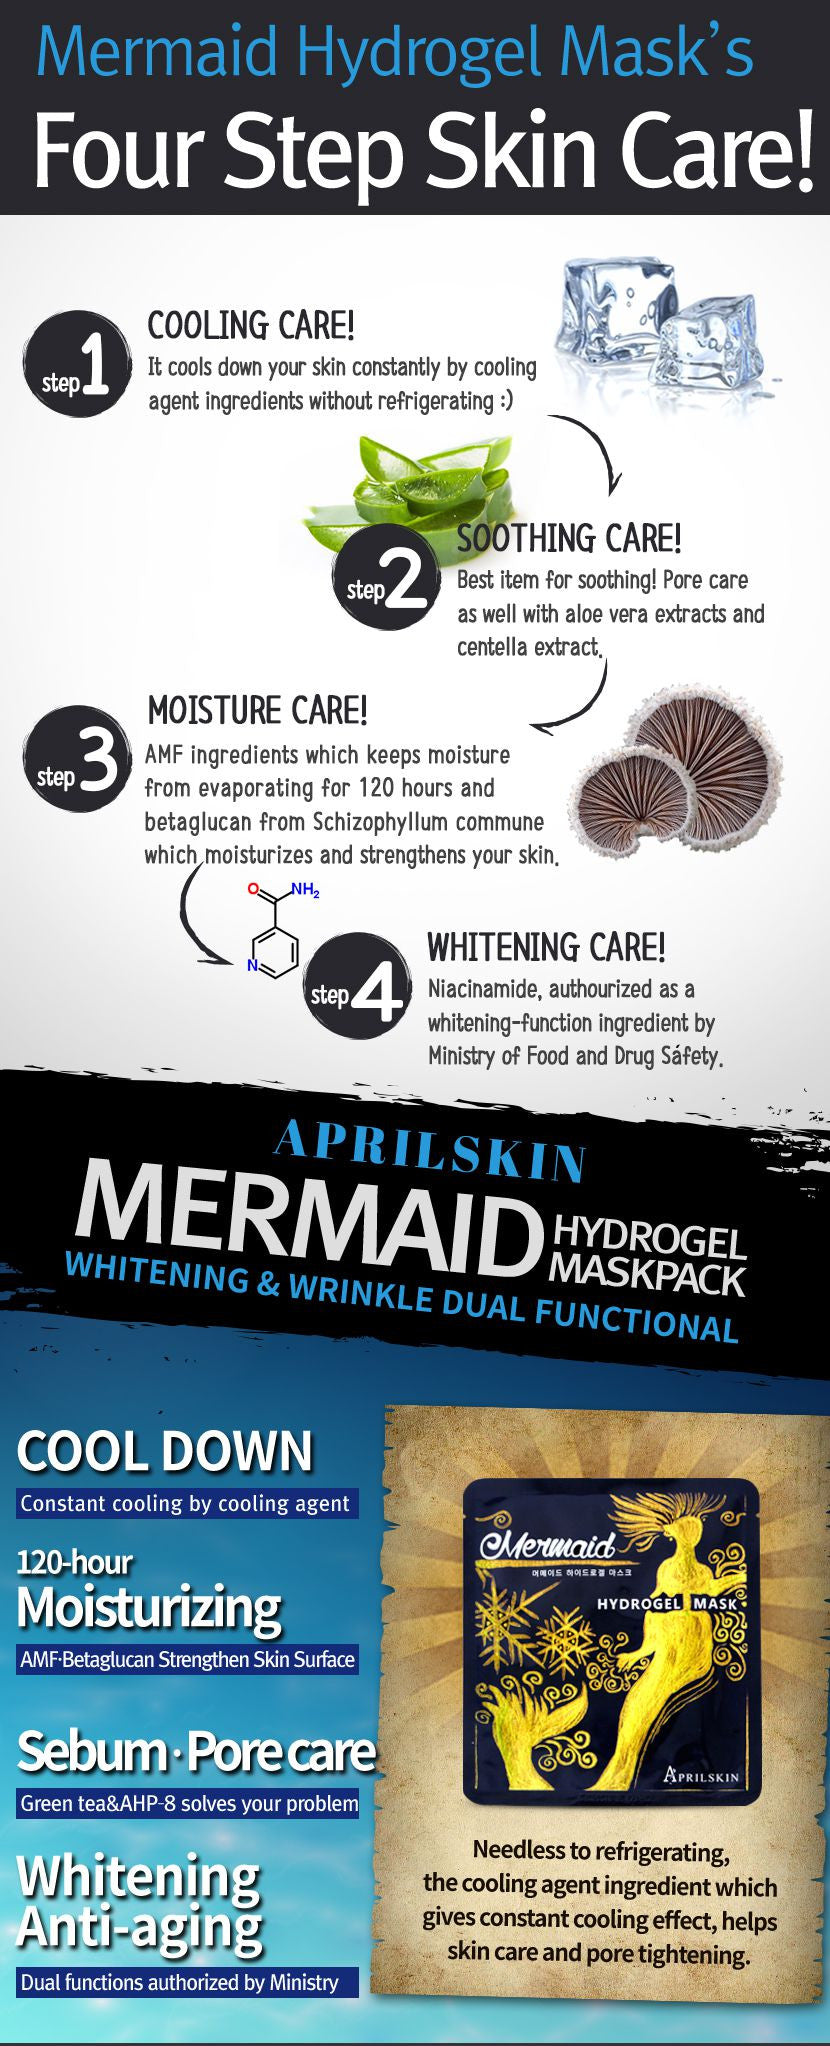 APRIL HUDMERMAID HYDROGEL MASK PACK - IMPAVIID